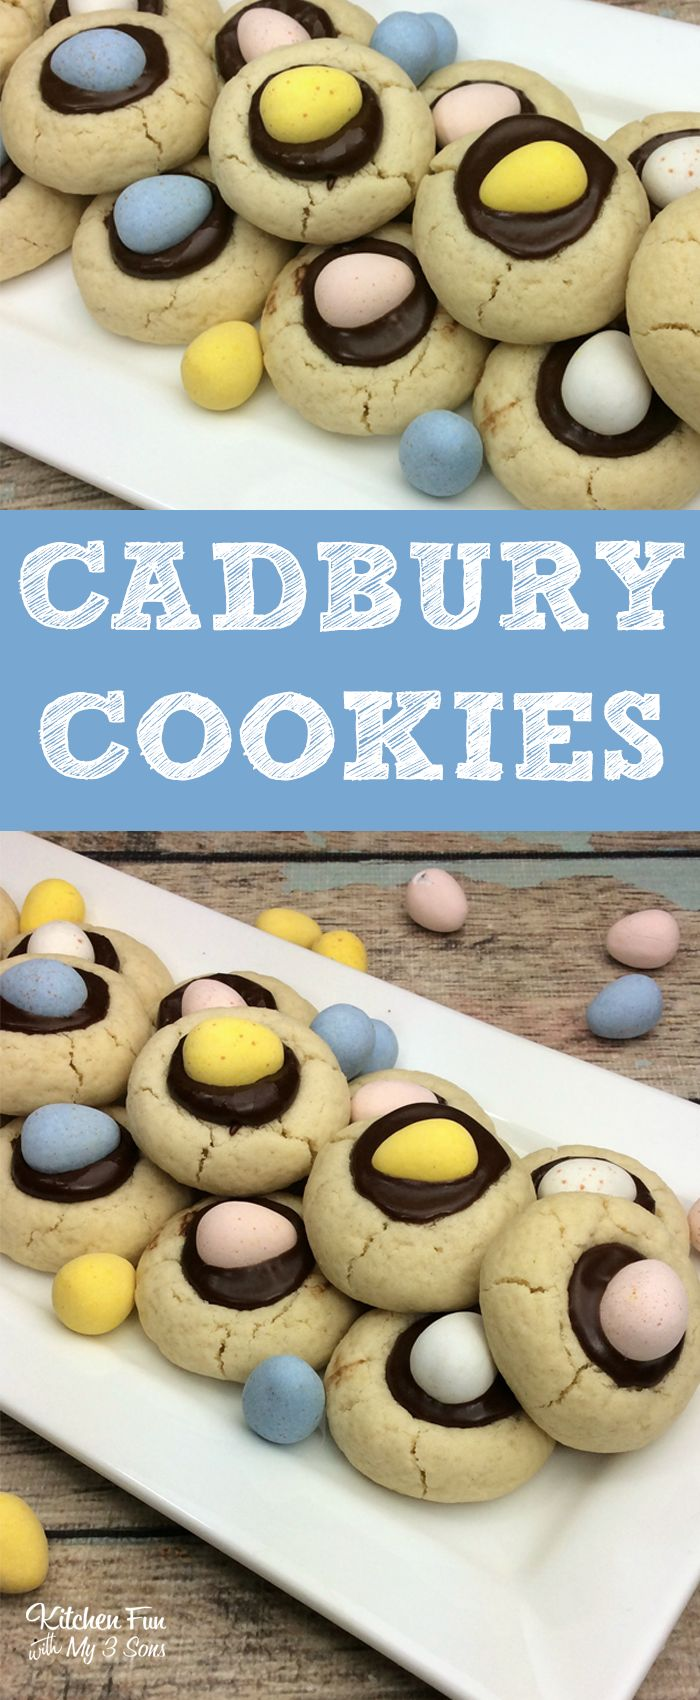 Cadbury Cookies for Easter with mini Cadbury eggs! #easter